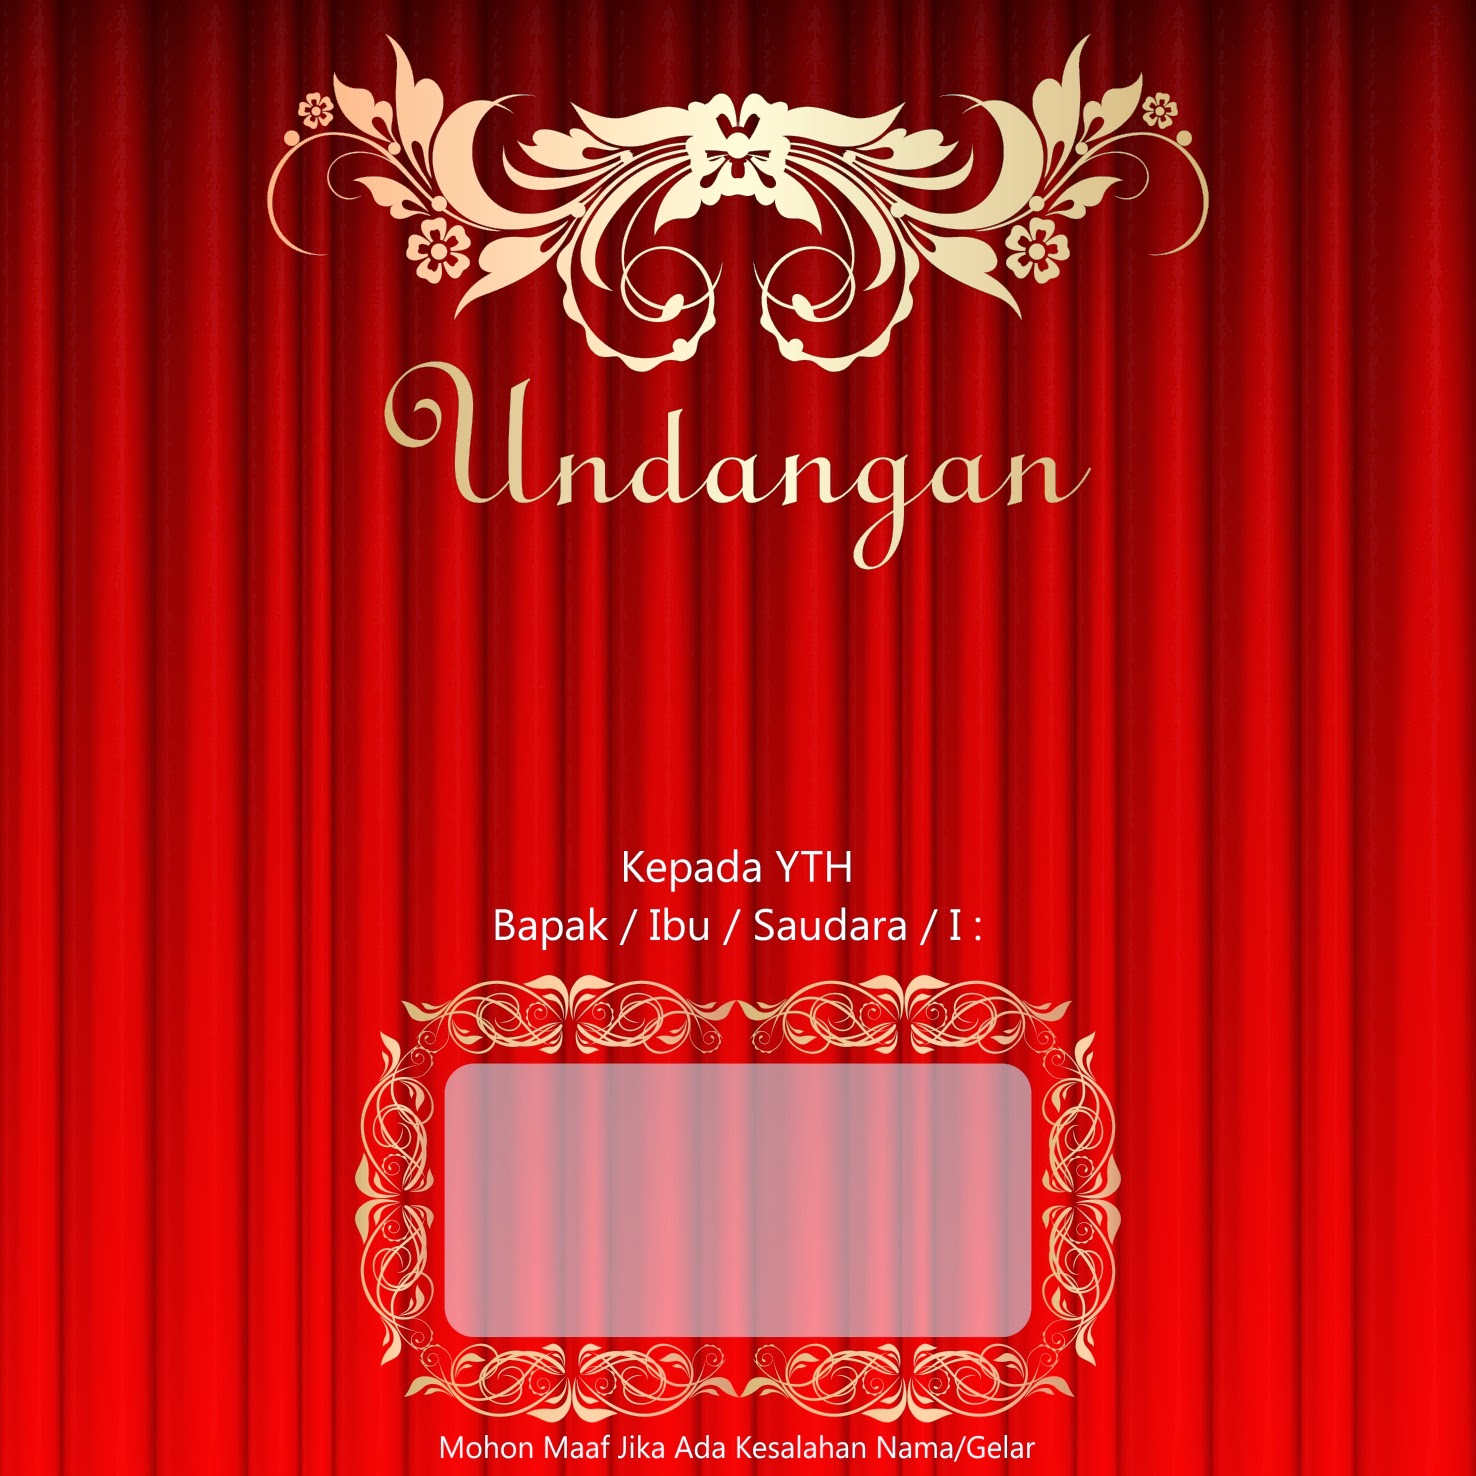 Template Undangan Pernikahan CDR File Gratis Download - Canonz Grafhz